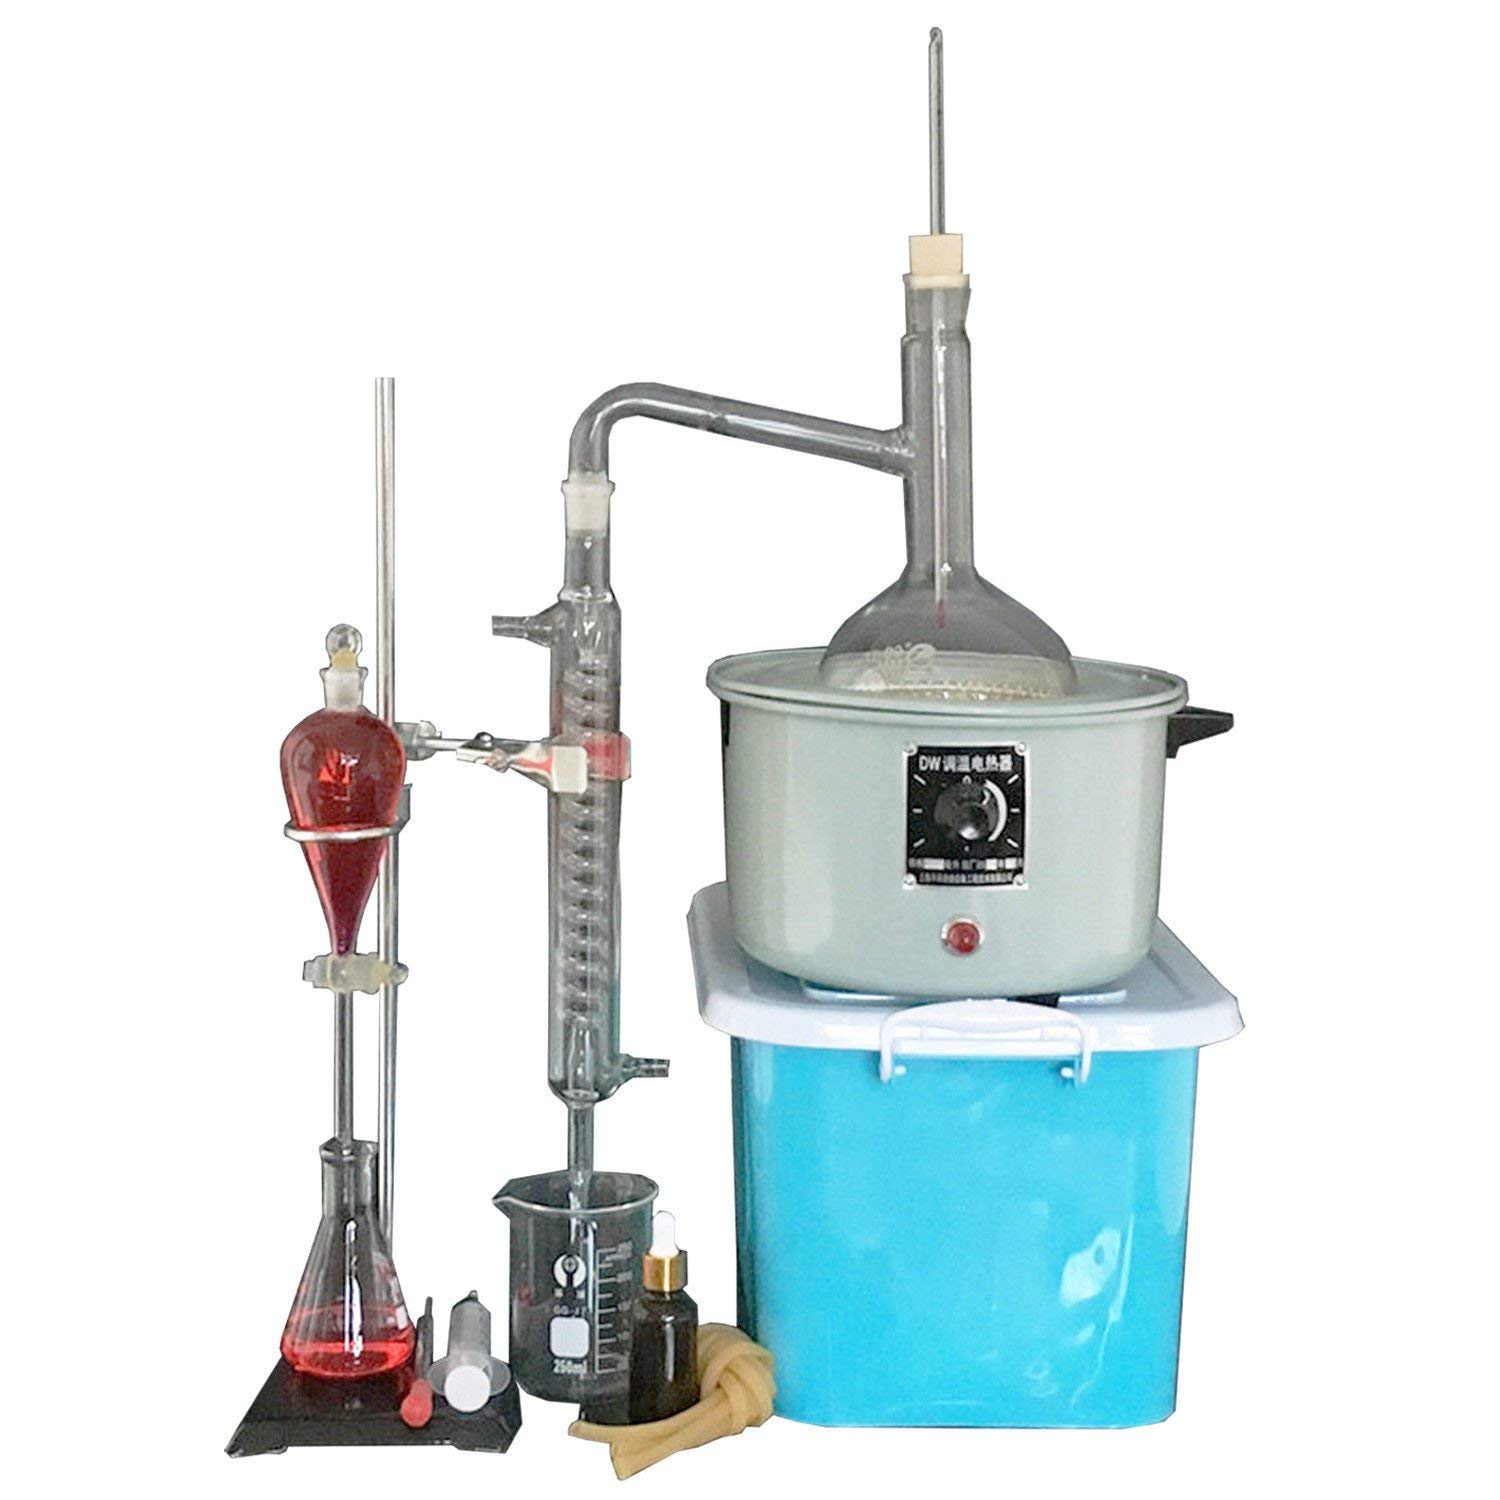 New Lab Essential Oil Extraction Distillation Apparatus Water Distiller Purifier Glassware Kits Hydrosol, Moonshine, Alcohol Distiller 1000ml with Electric Heater Lifts